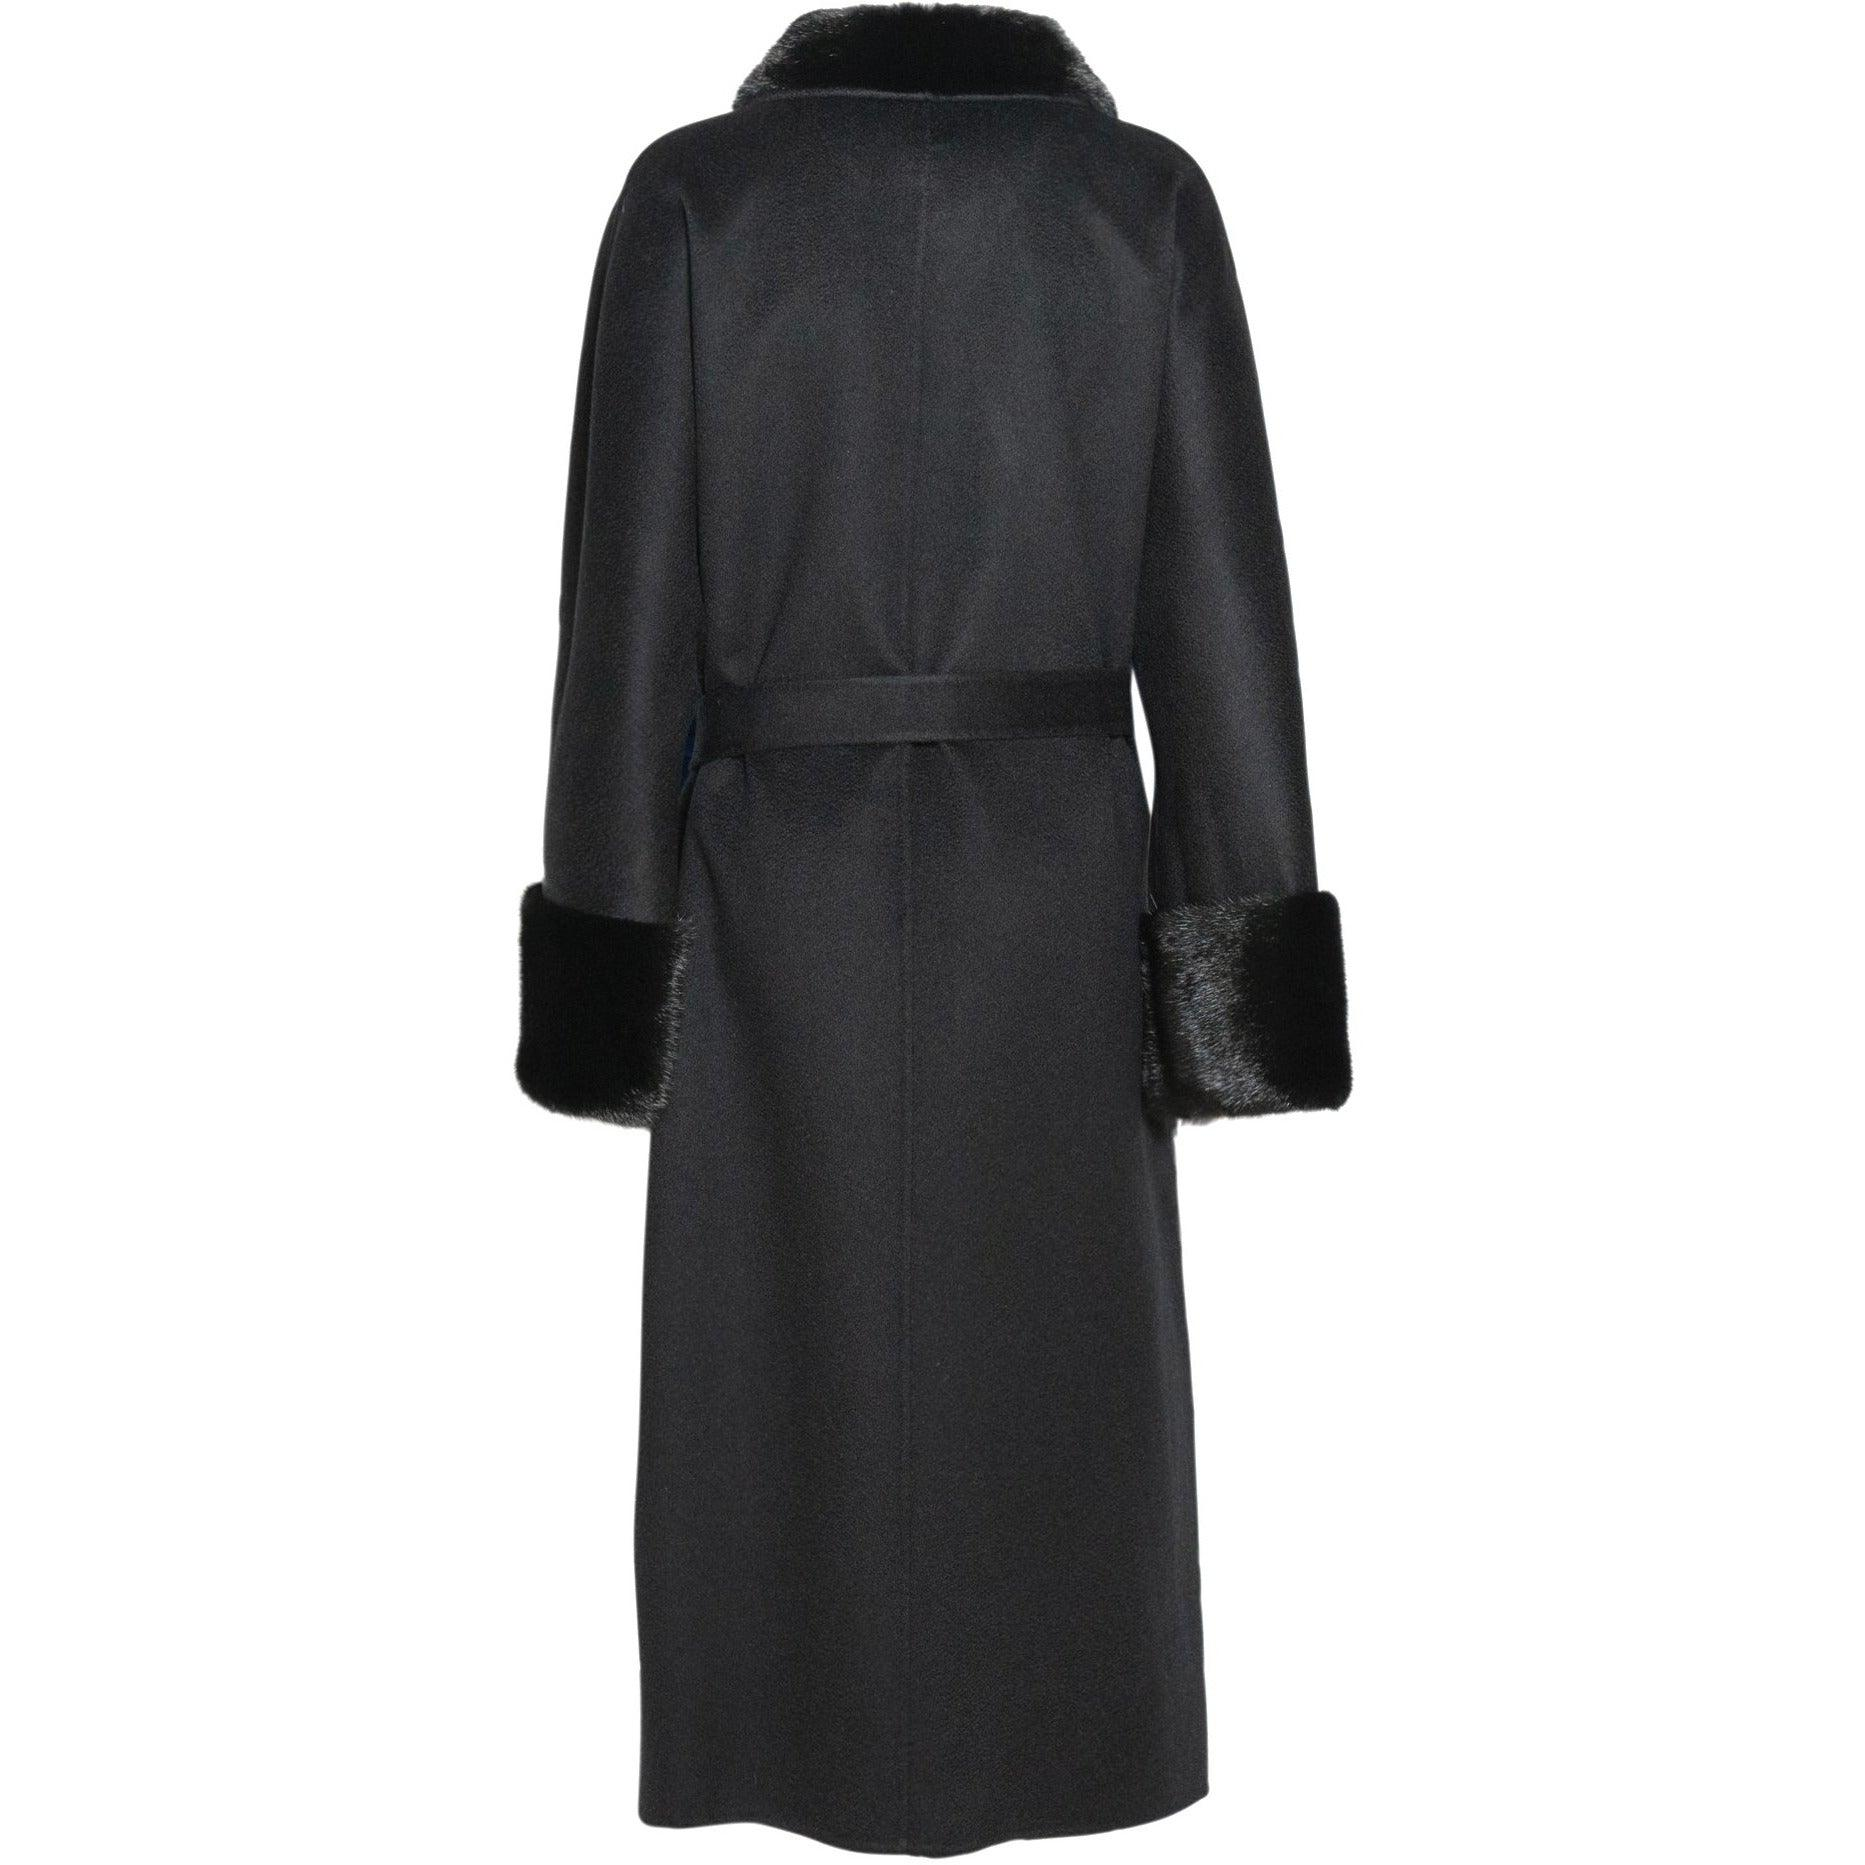 REVERSIBLE CASHMERE LONG COAT WITH MINK COLLAR - ROS1866 New 2020 Collection